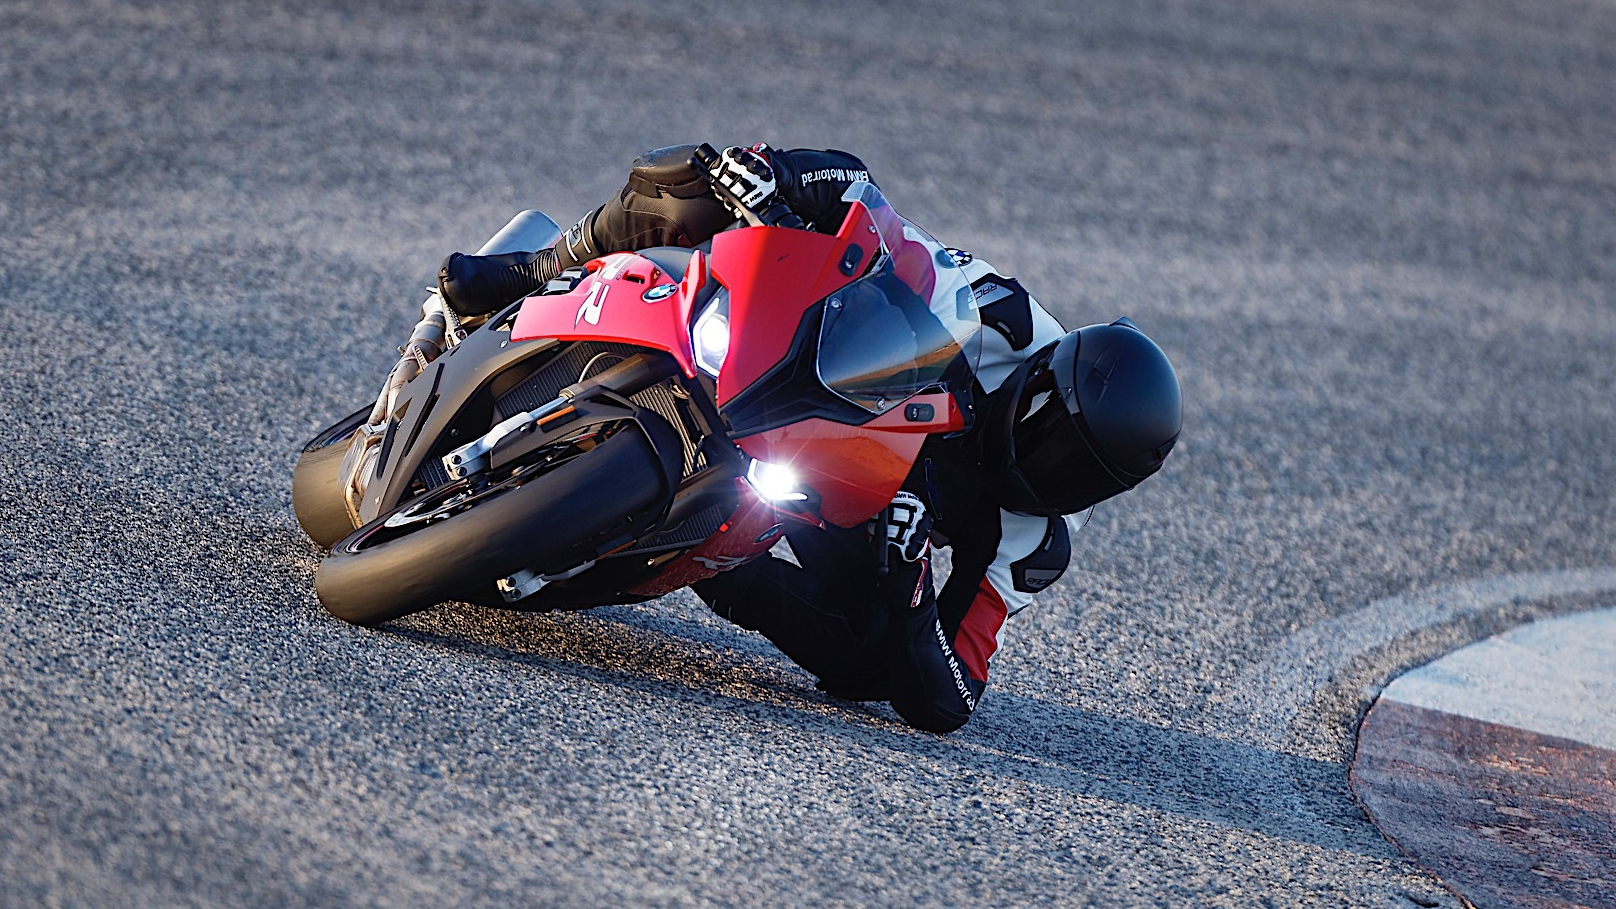 2019 Bmw S 1000 Rr Pictures Photos Wallpapers Top Speed